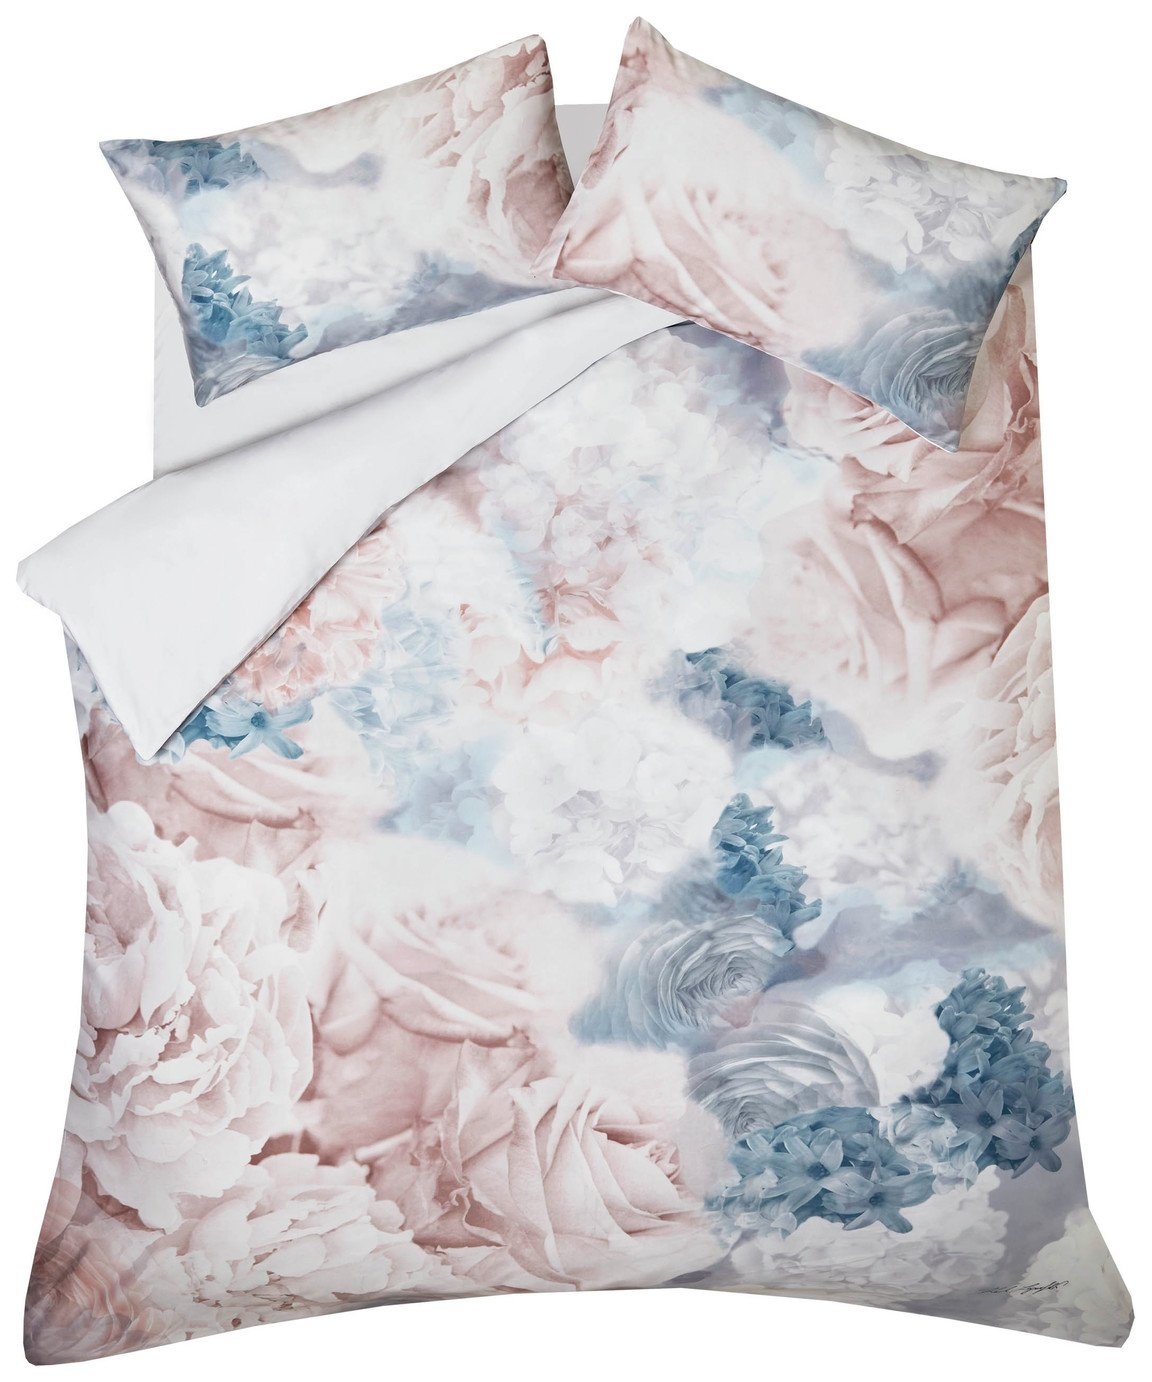 Karl Lagerfeld Flourish Bedding Set - Kingsize